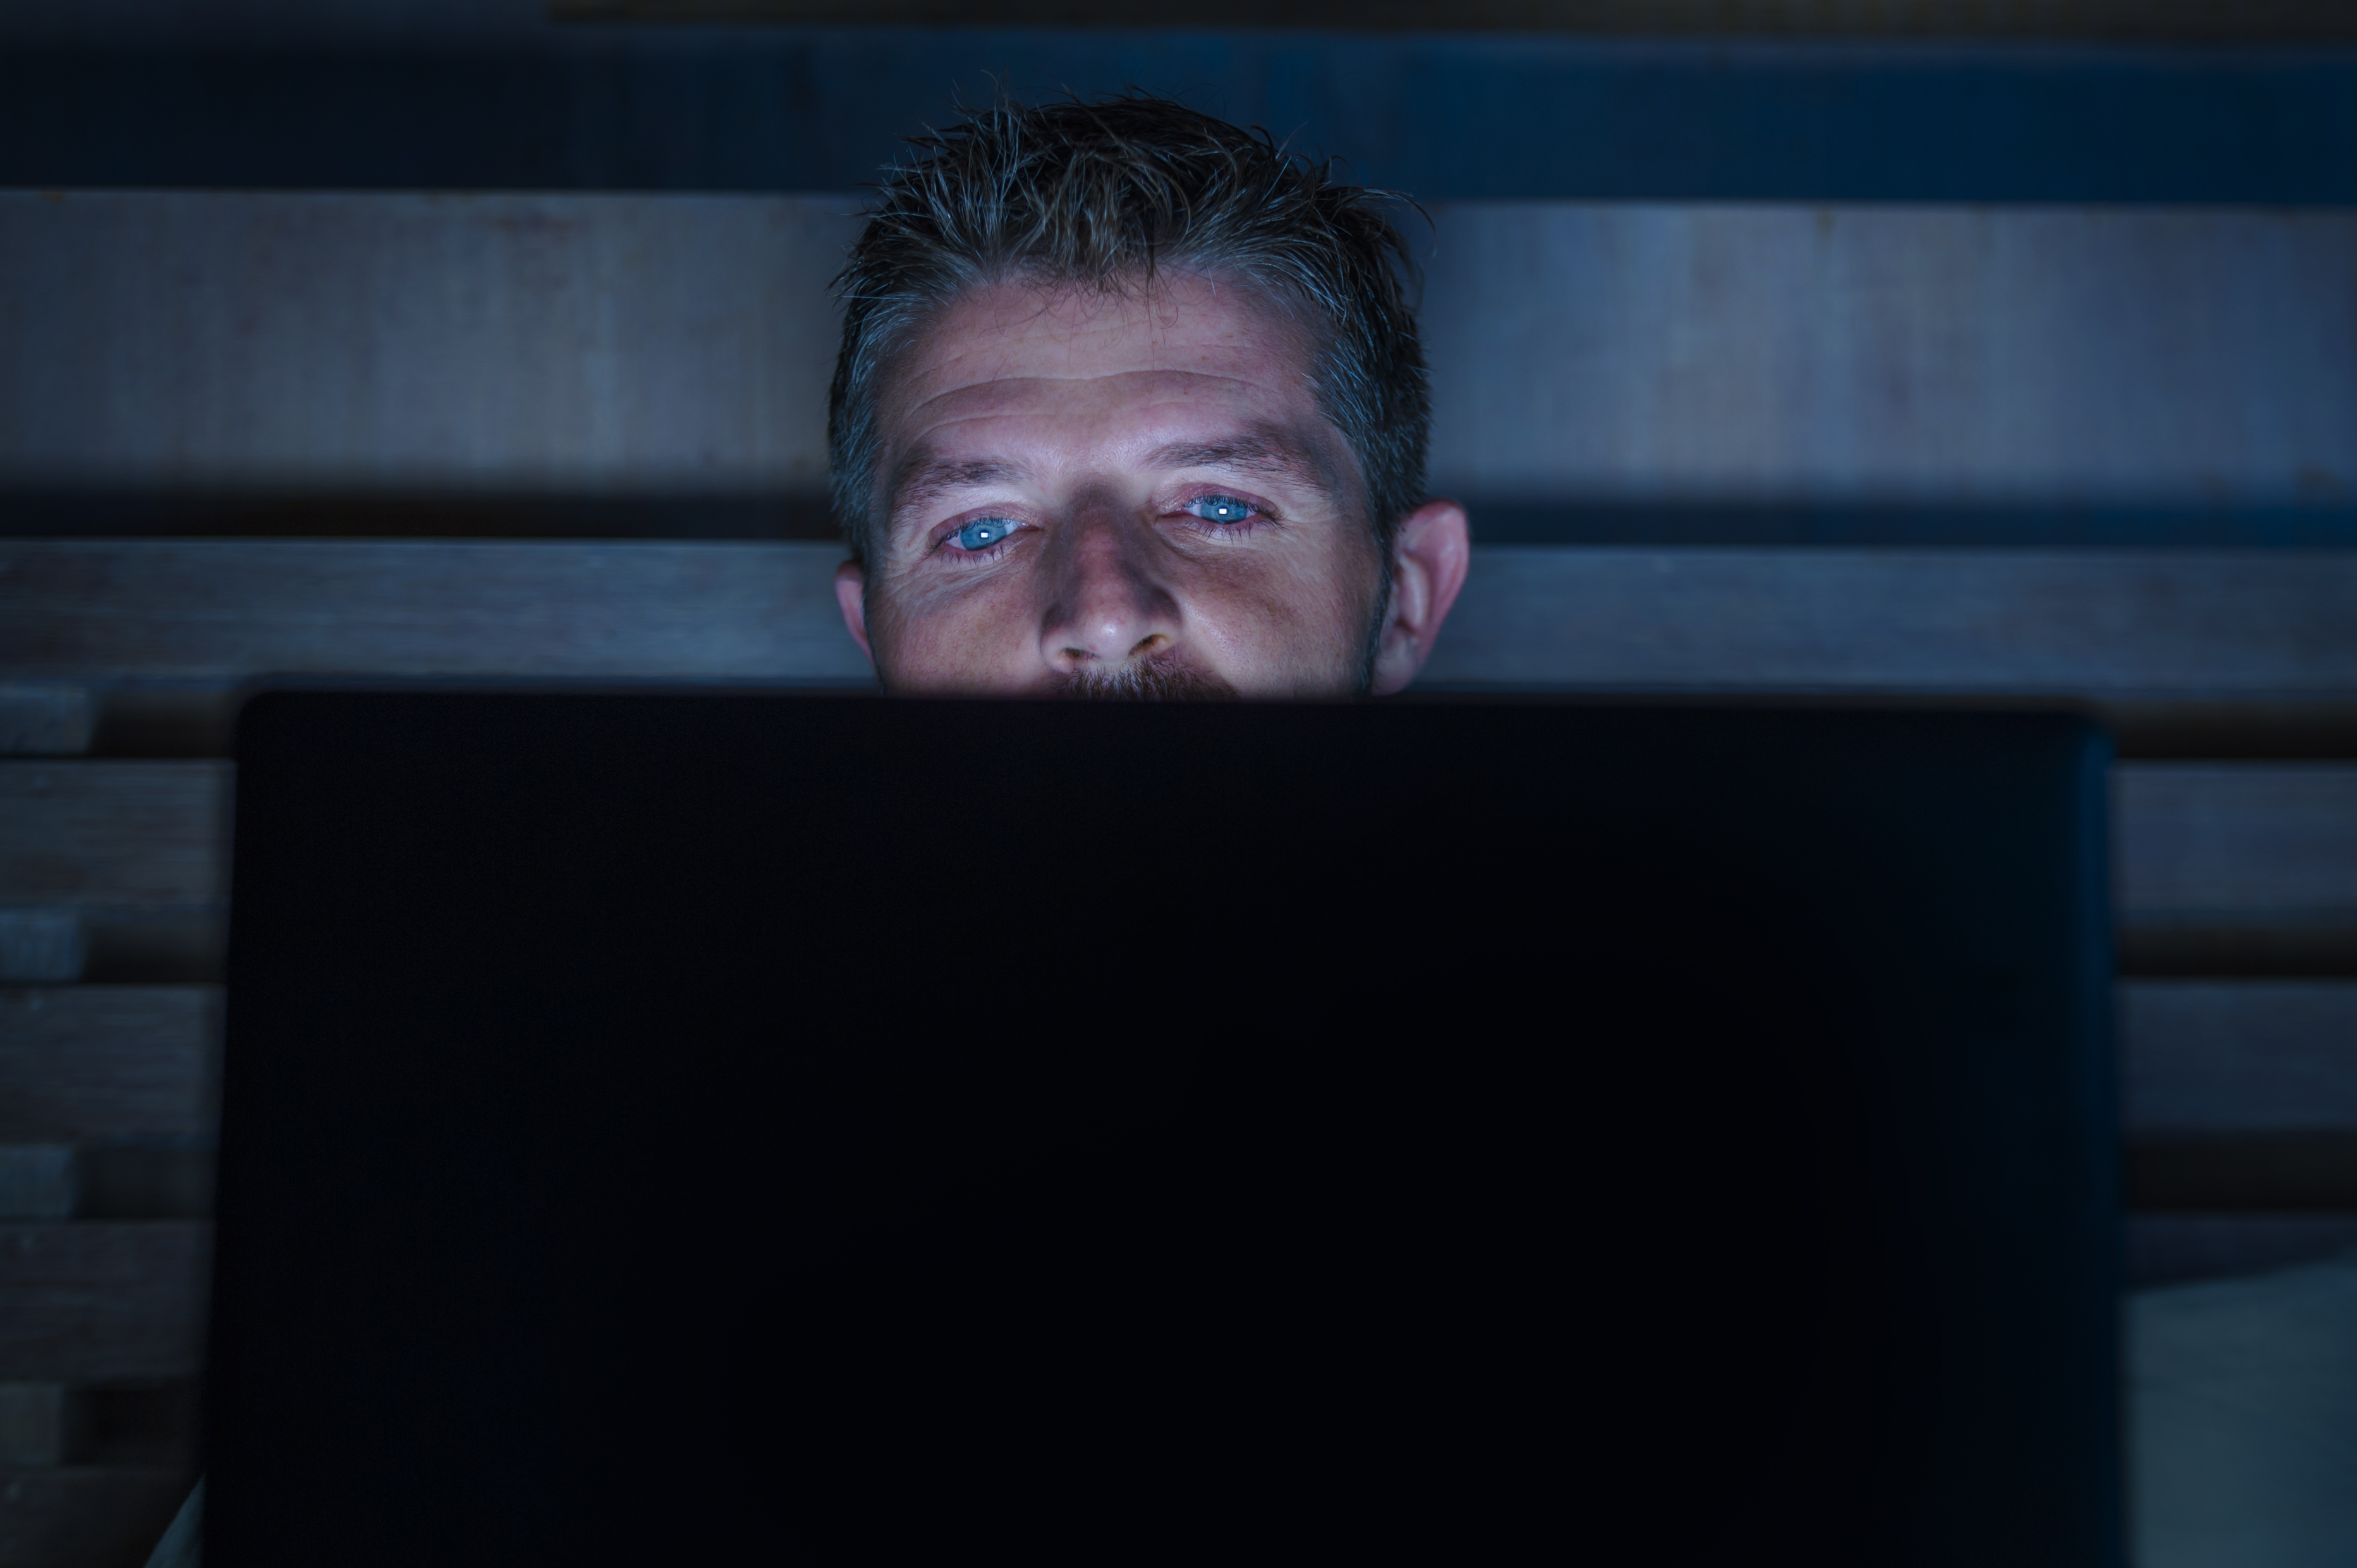 man looking at computer screen while sitting in the dark